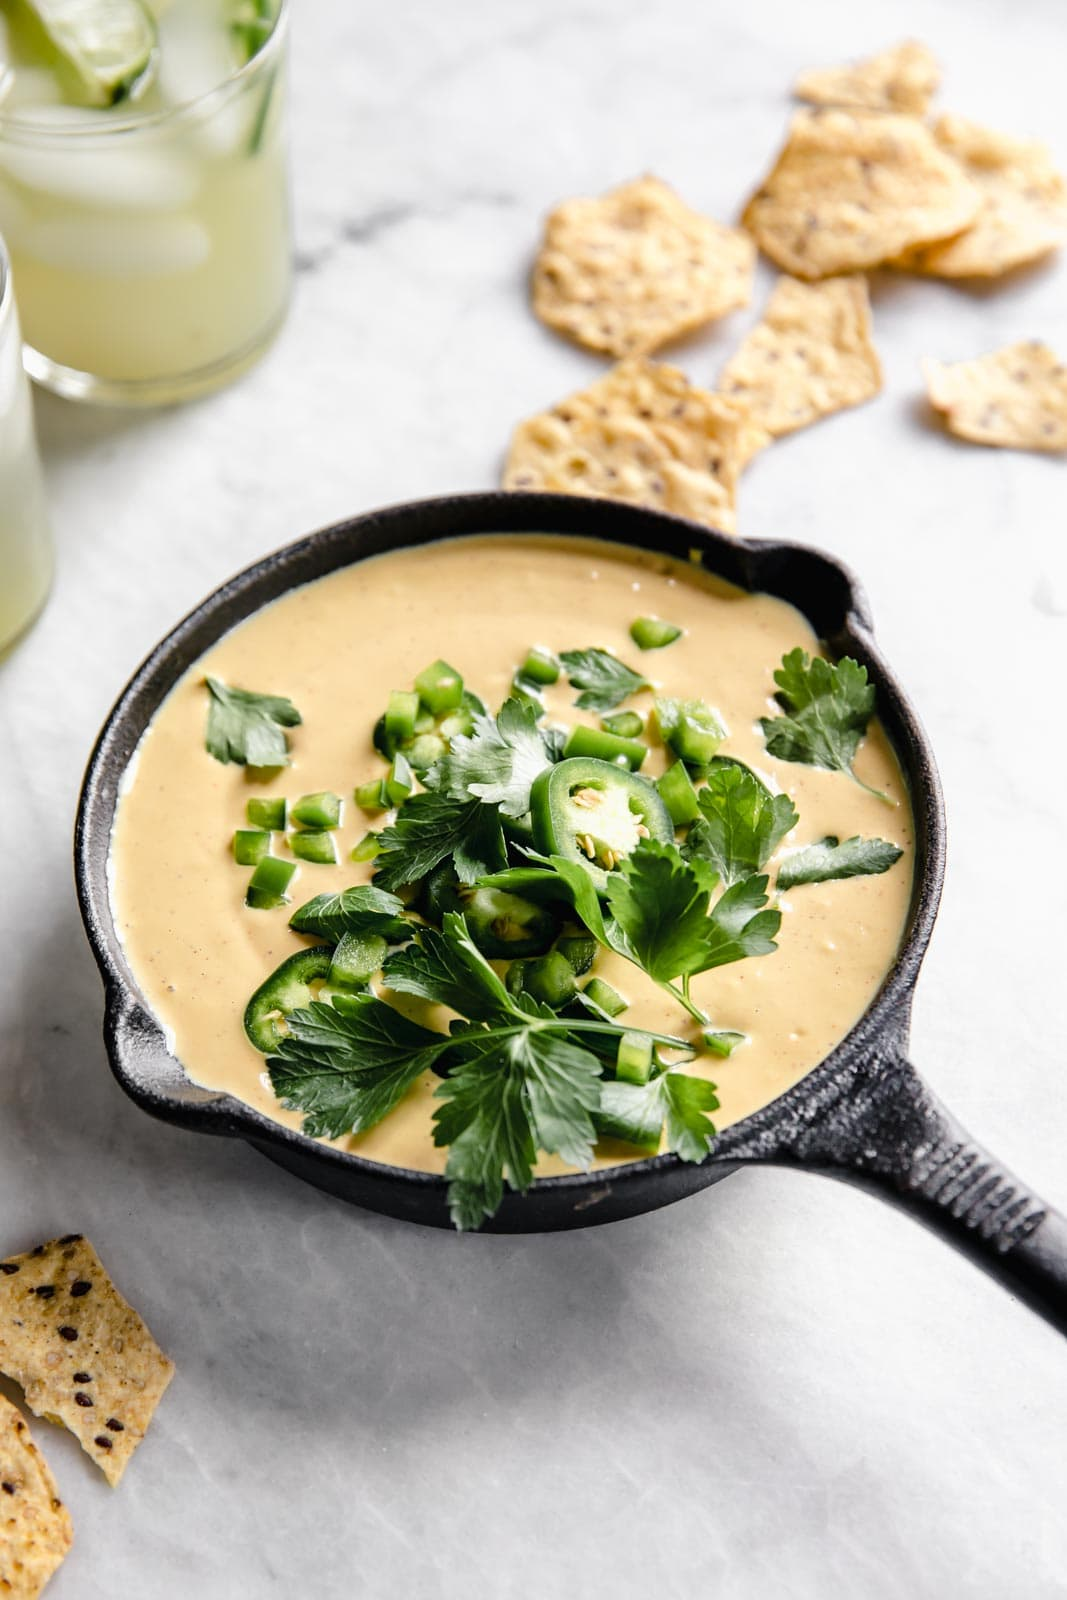 Creamy vegan queso made with cashews, nutritional yeast and smoky spice. Even the biggest cheese lovers will die over this easy vegan queso.